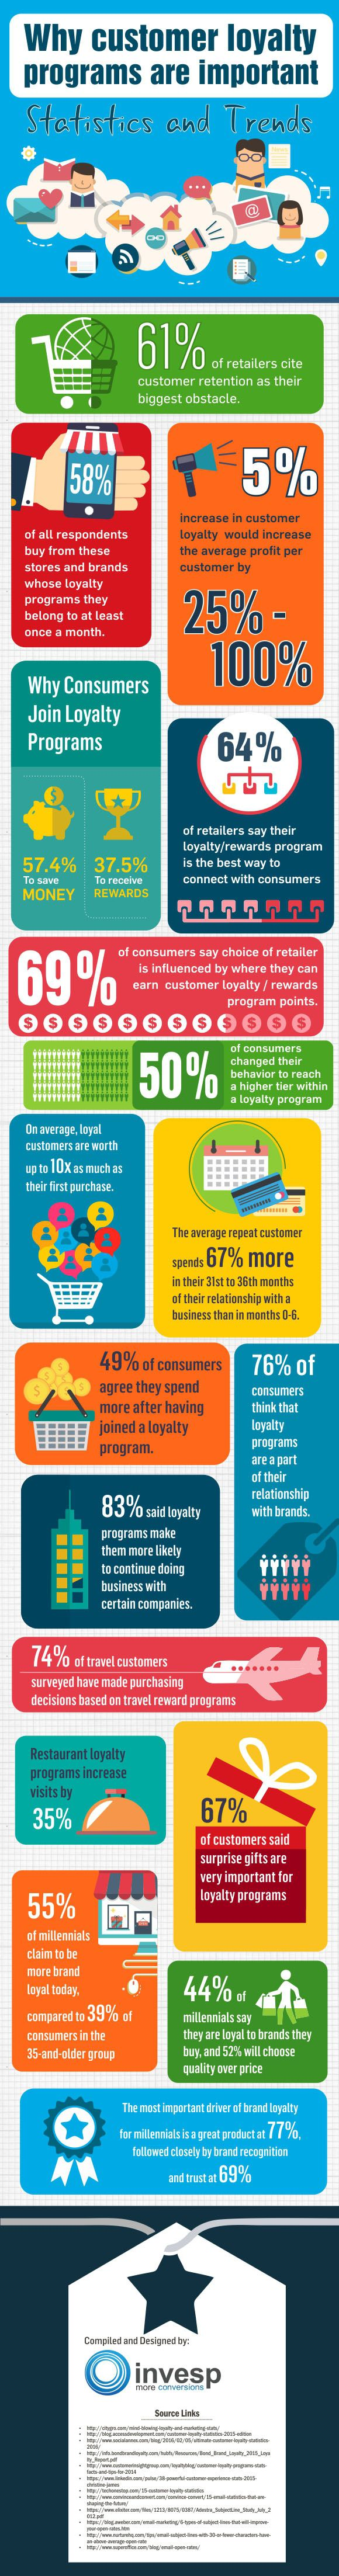 Why customer loyalty programs are important We have Custom Punch Cards! They are a great way to keep your customers  coming back  http://www.specialtystoreservices.com/productdetails.aspx?productid=46438&group=&img=6904.jpg